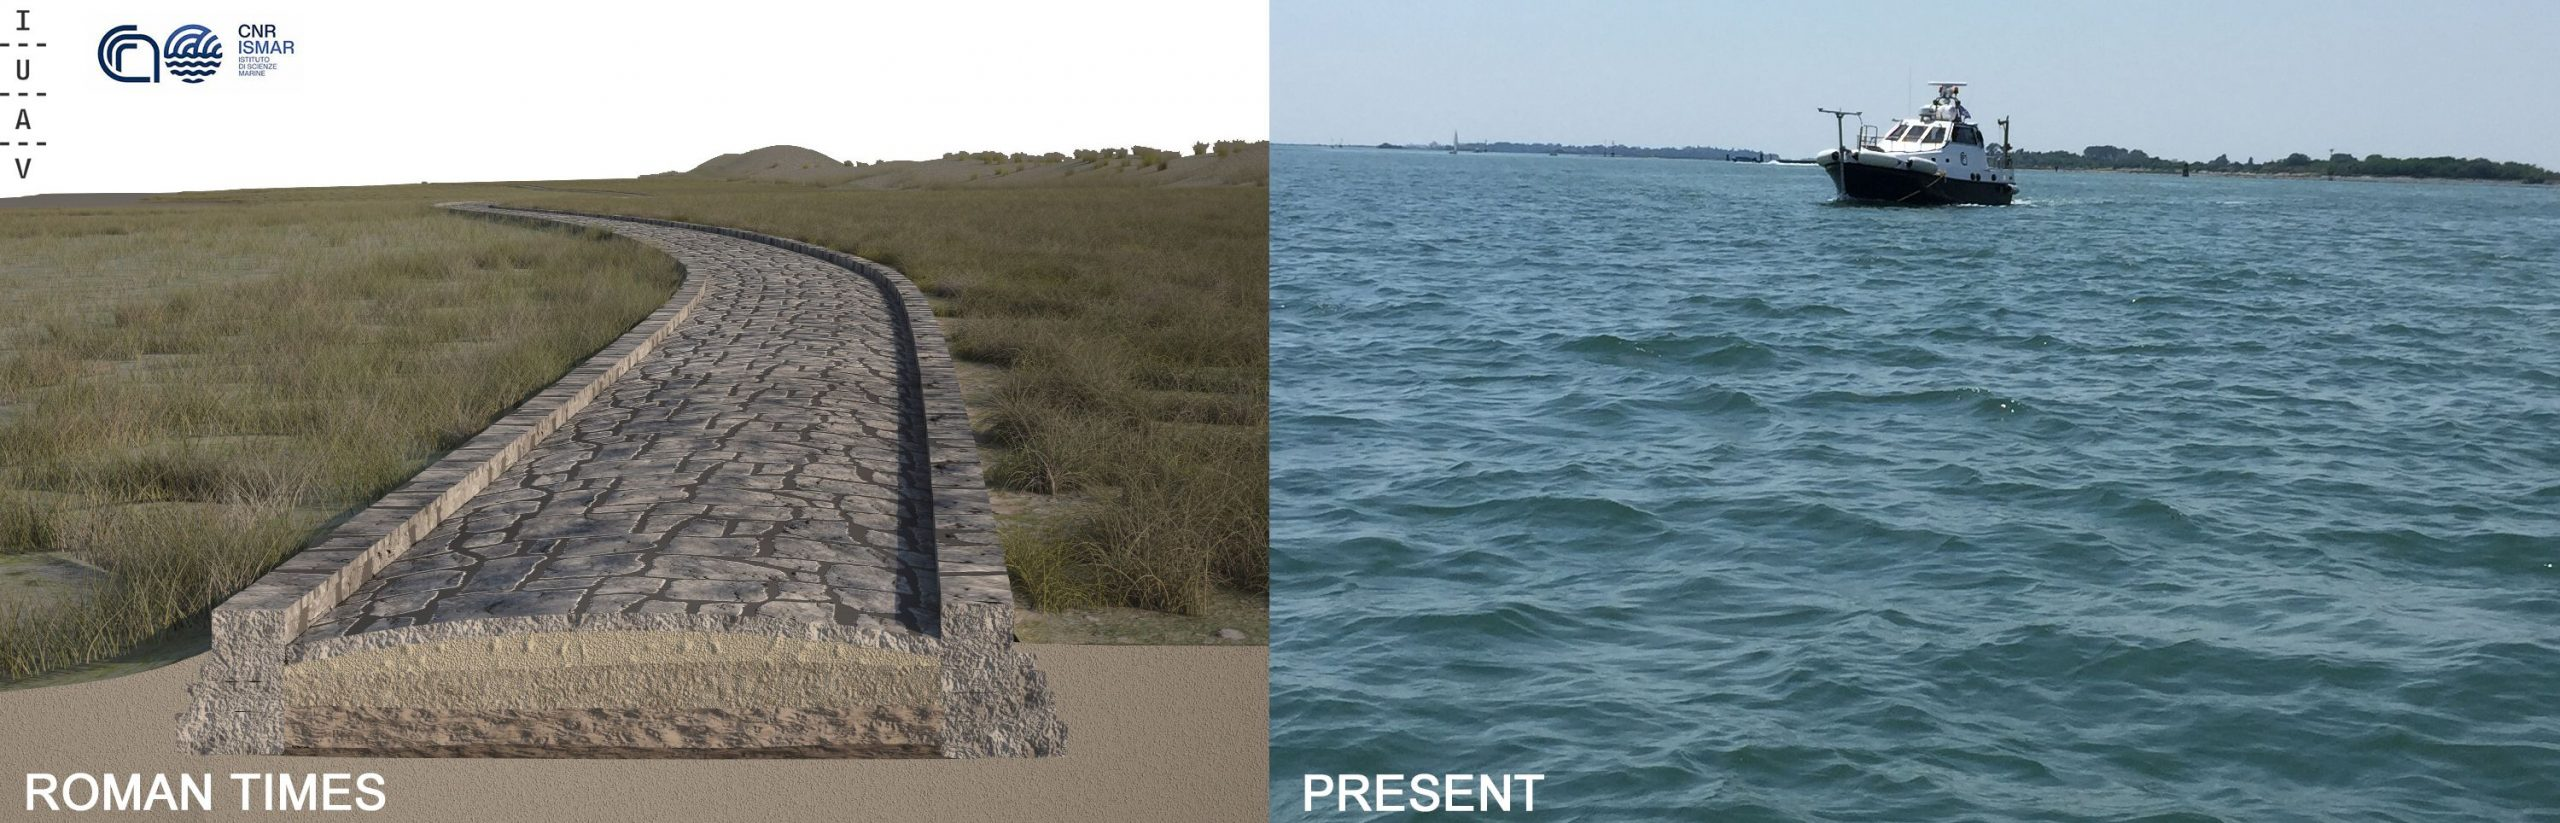 A Roman road in the Venice lagoon indicates that a settlement may have existed at this point.